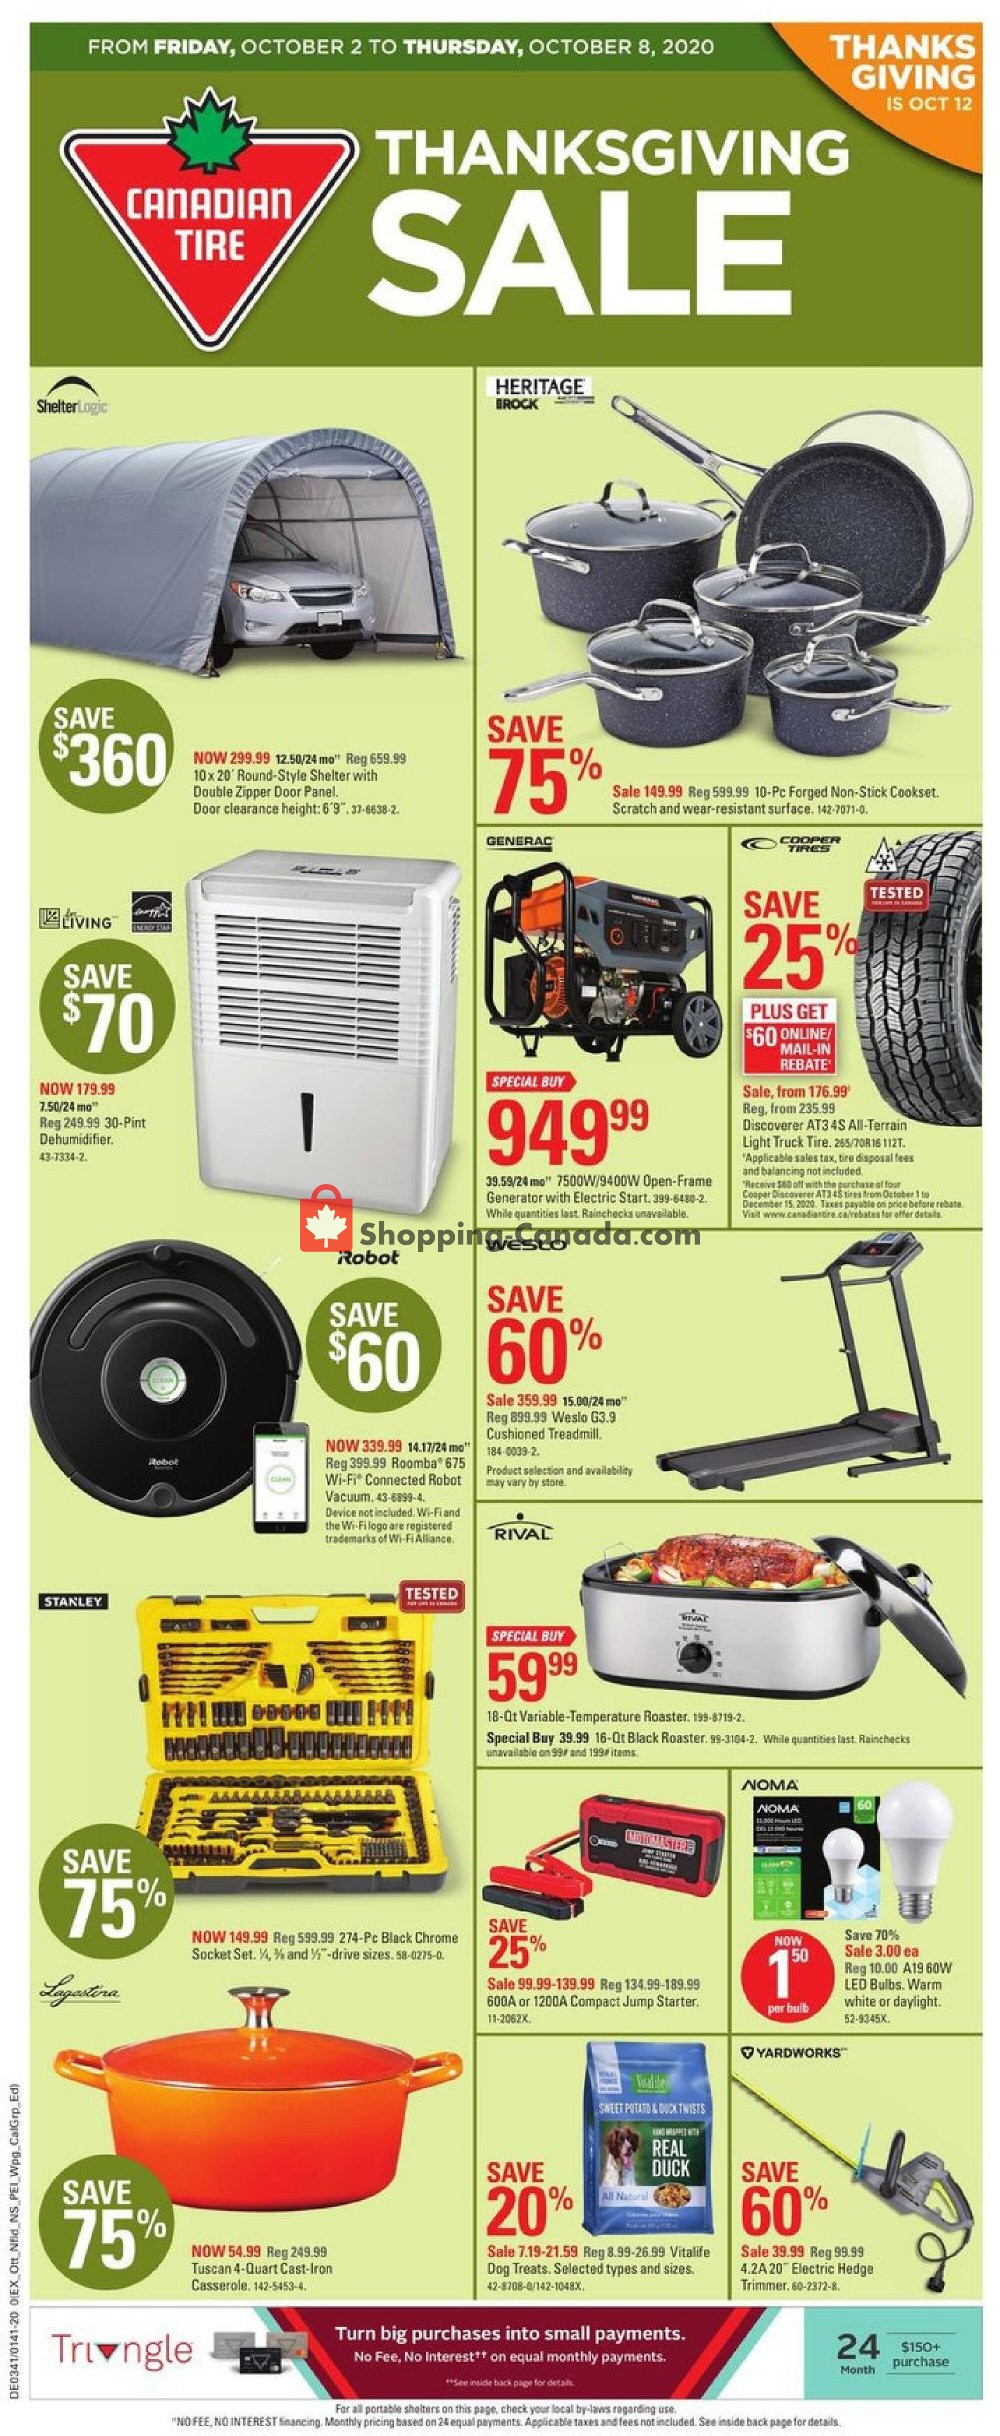 Canadian Tire Canada Flyer Thanksgiving Sale On October 2 October 8 2020 Shopping Canada